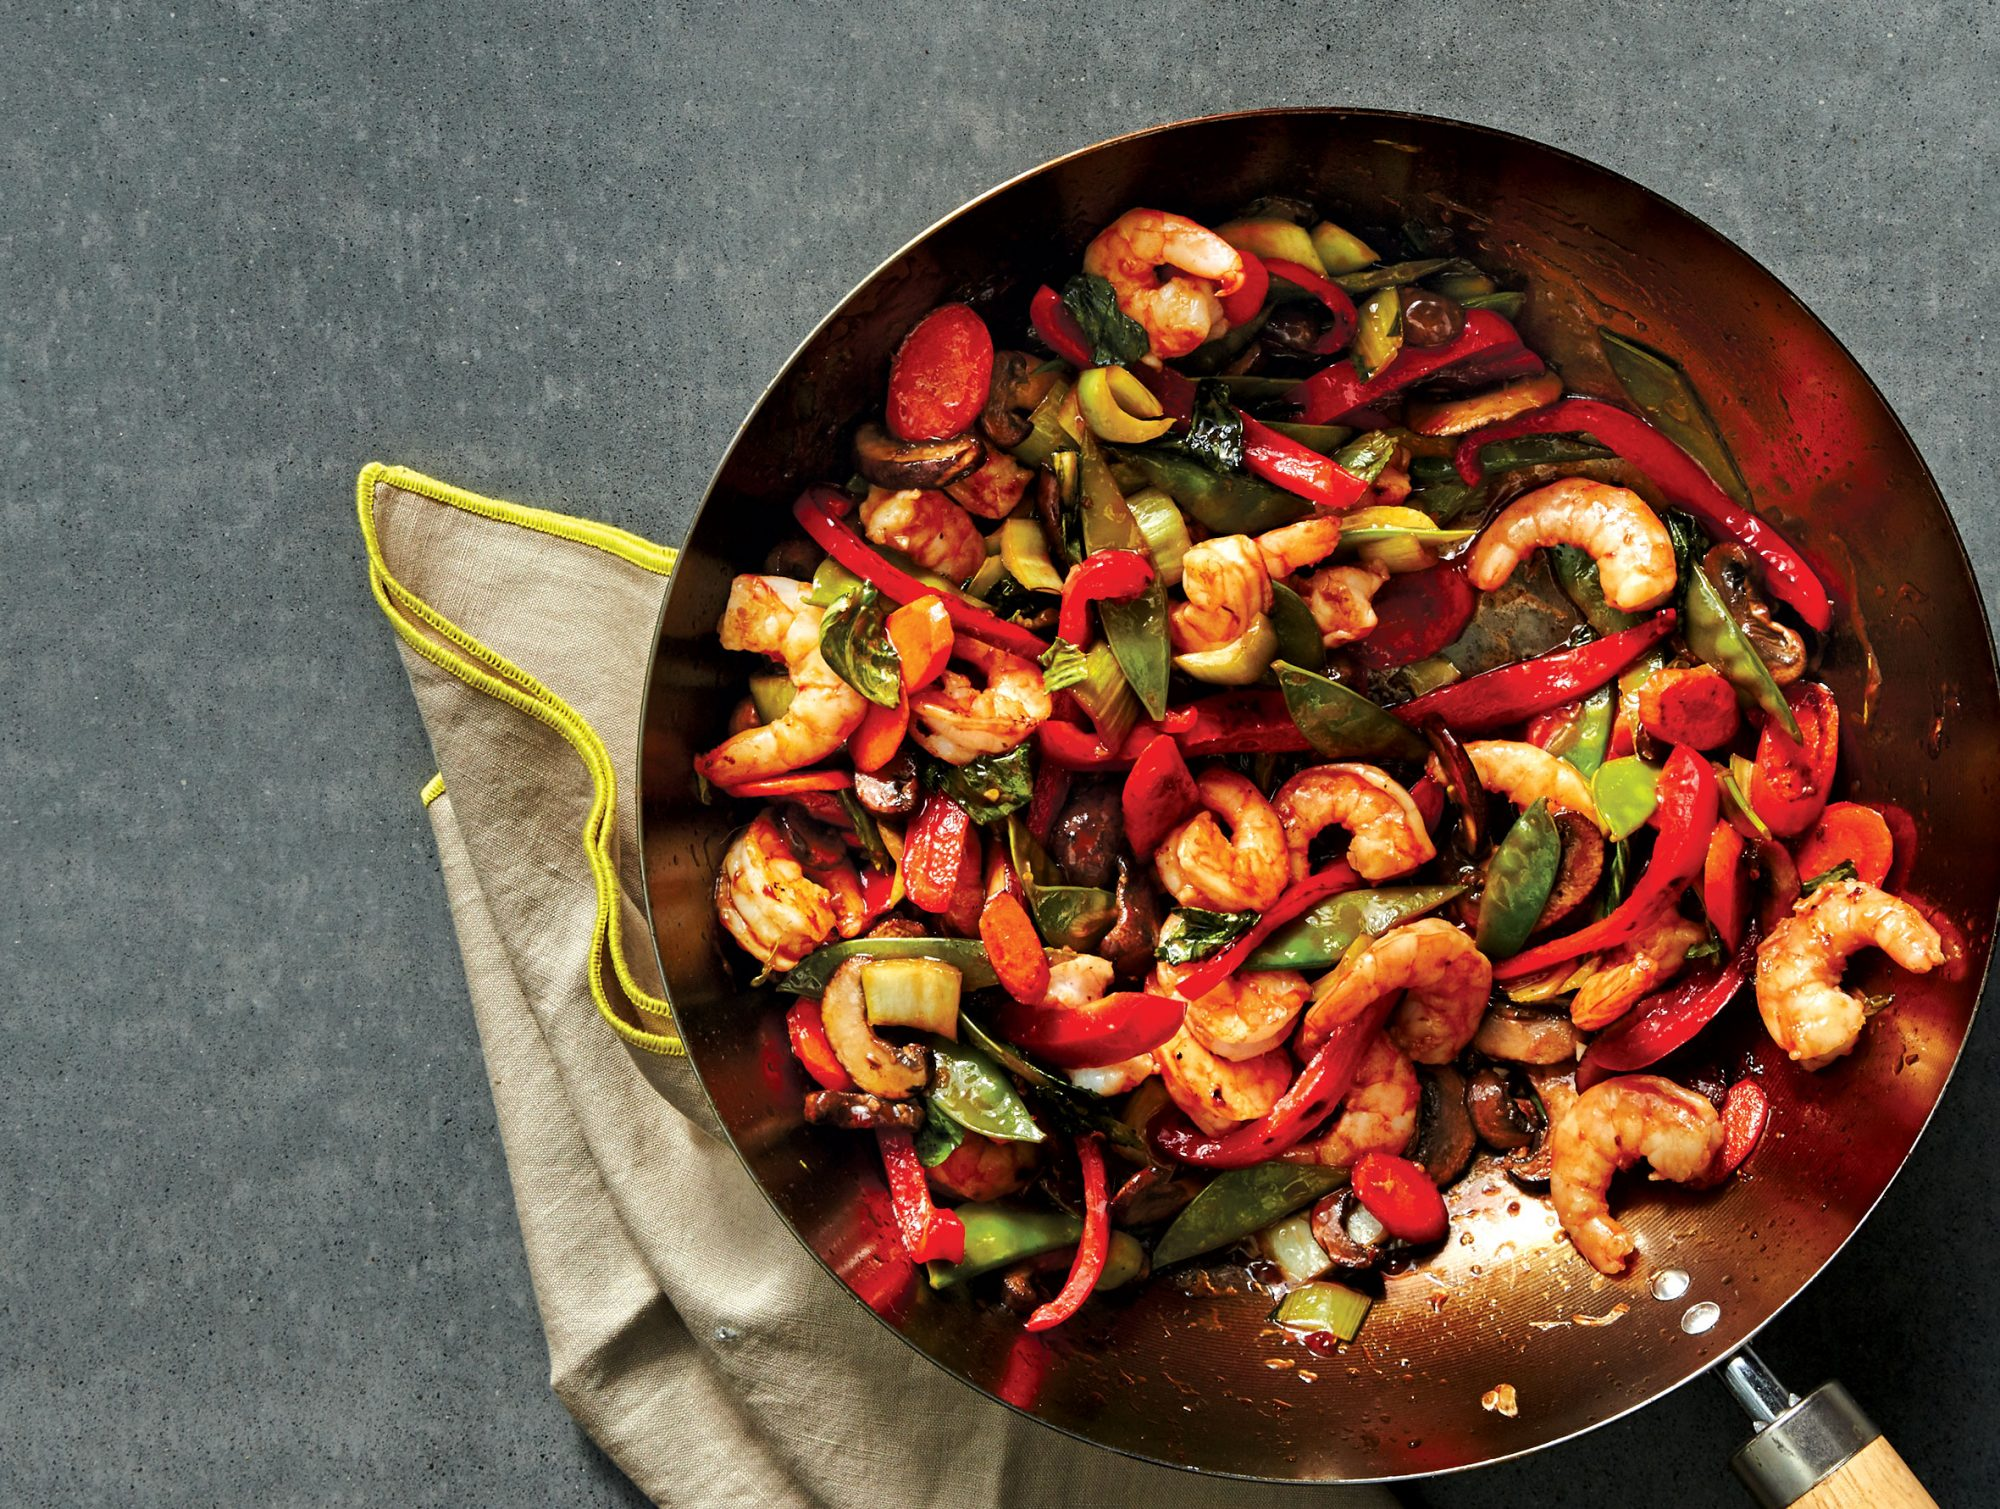 Shrimp-Vegetable Stir-Fry With Sesame-Ginger Sauce